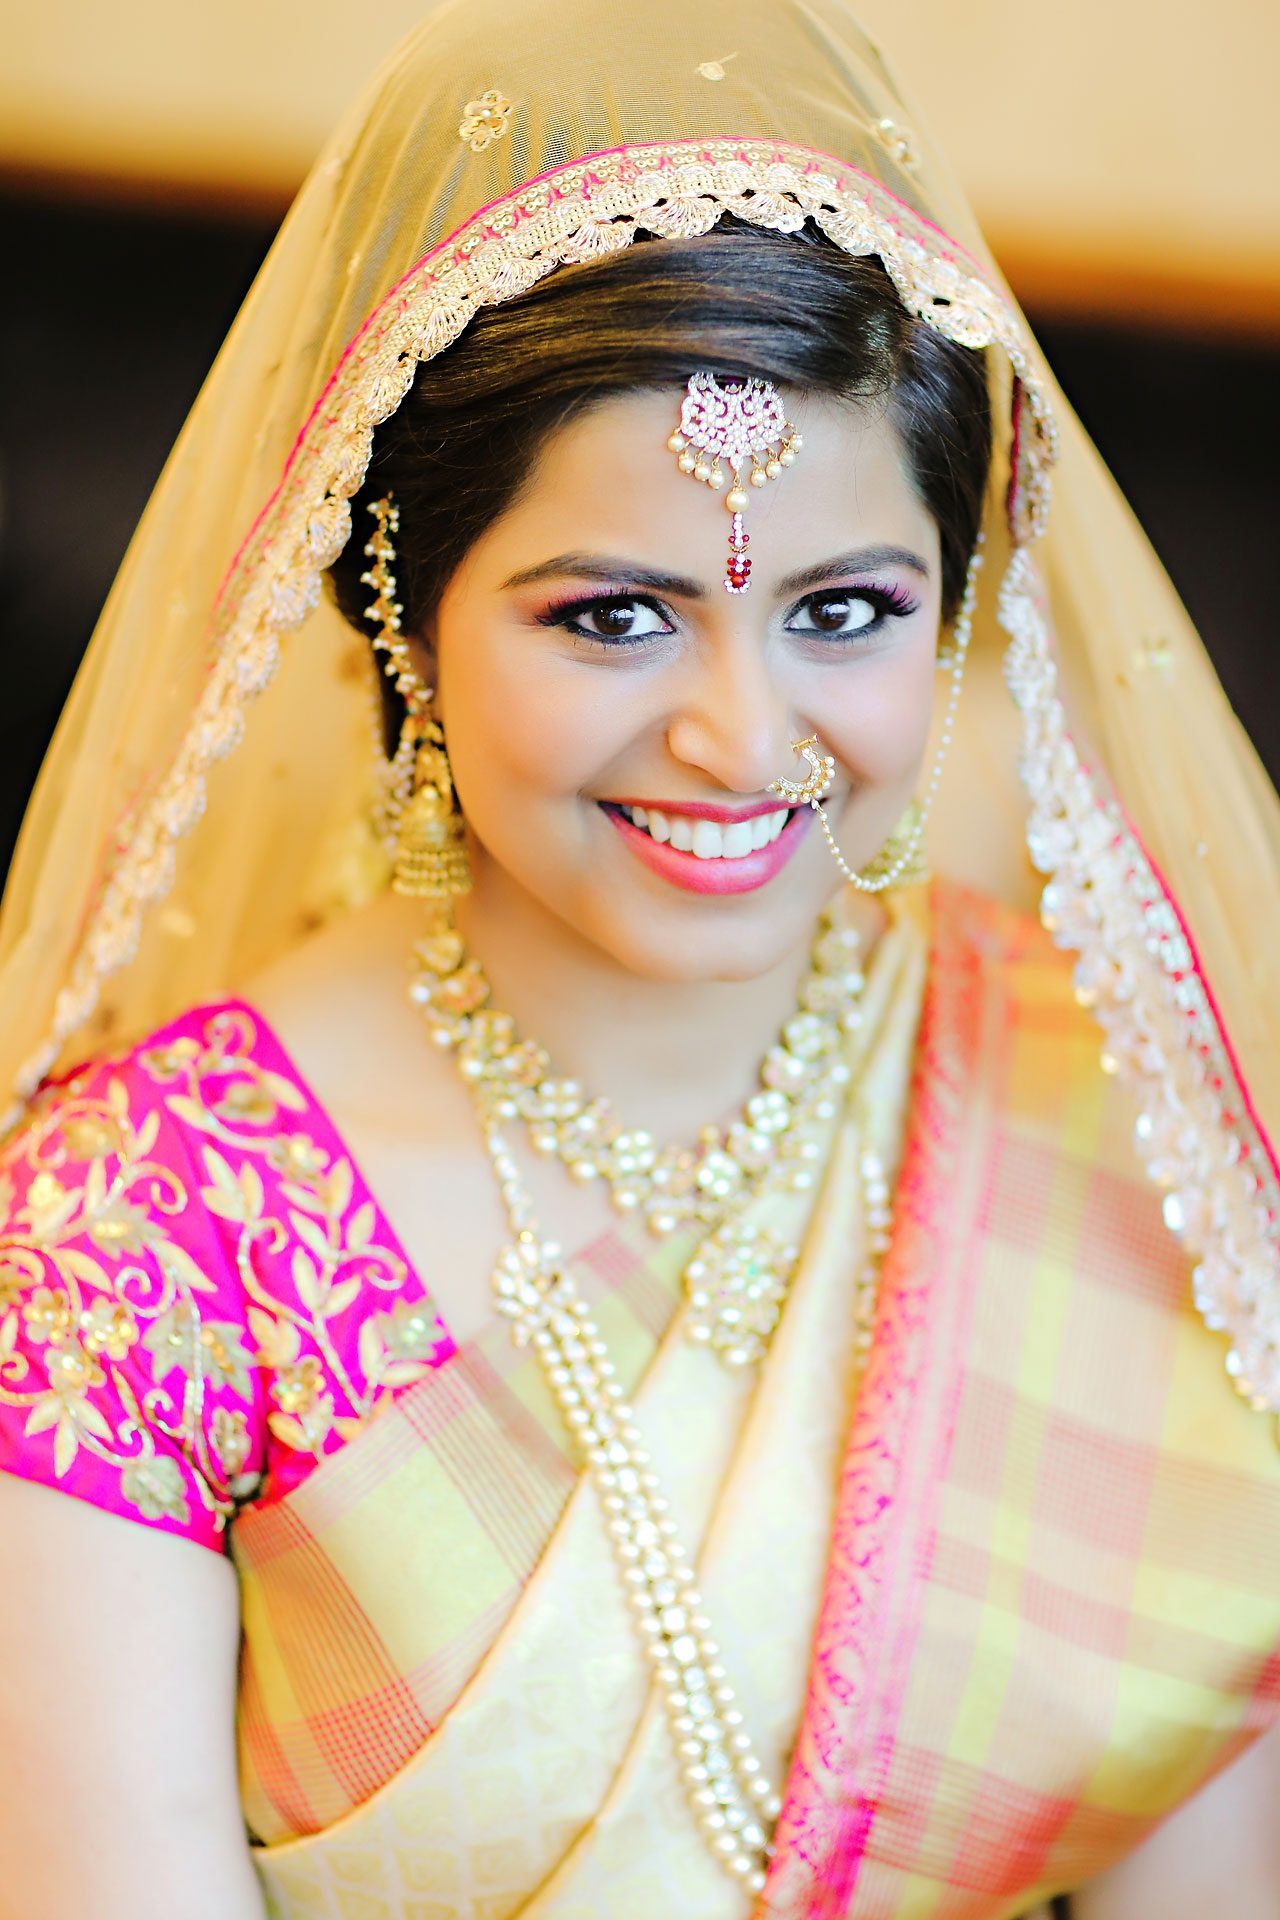 060 Vandana Anurag Indianapolis Indian Wedding